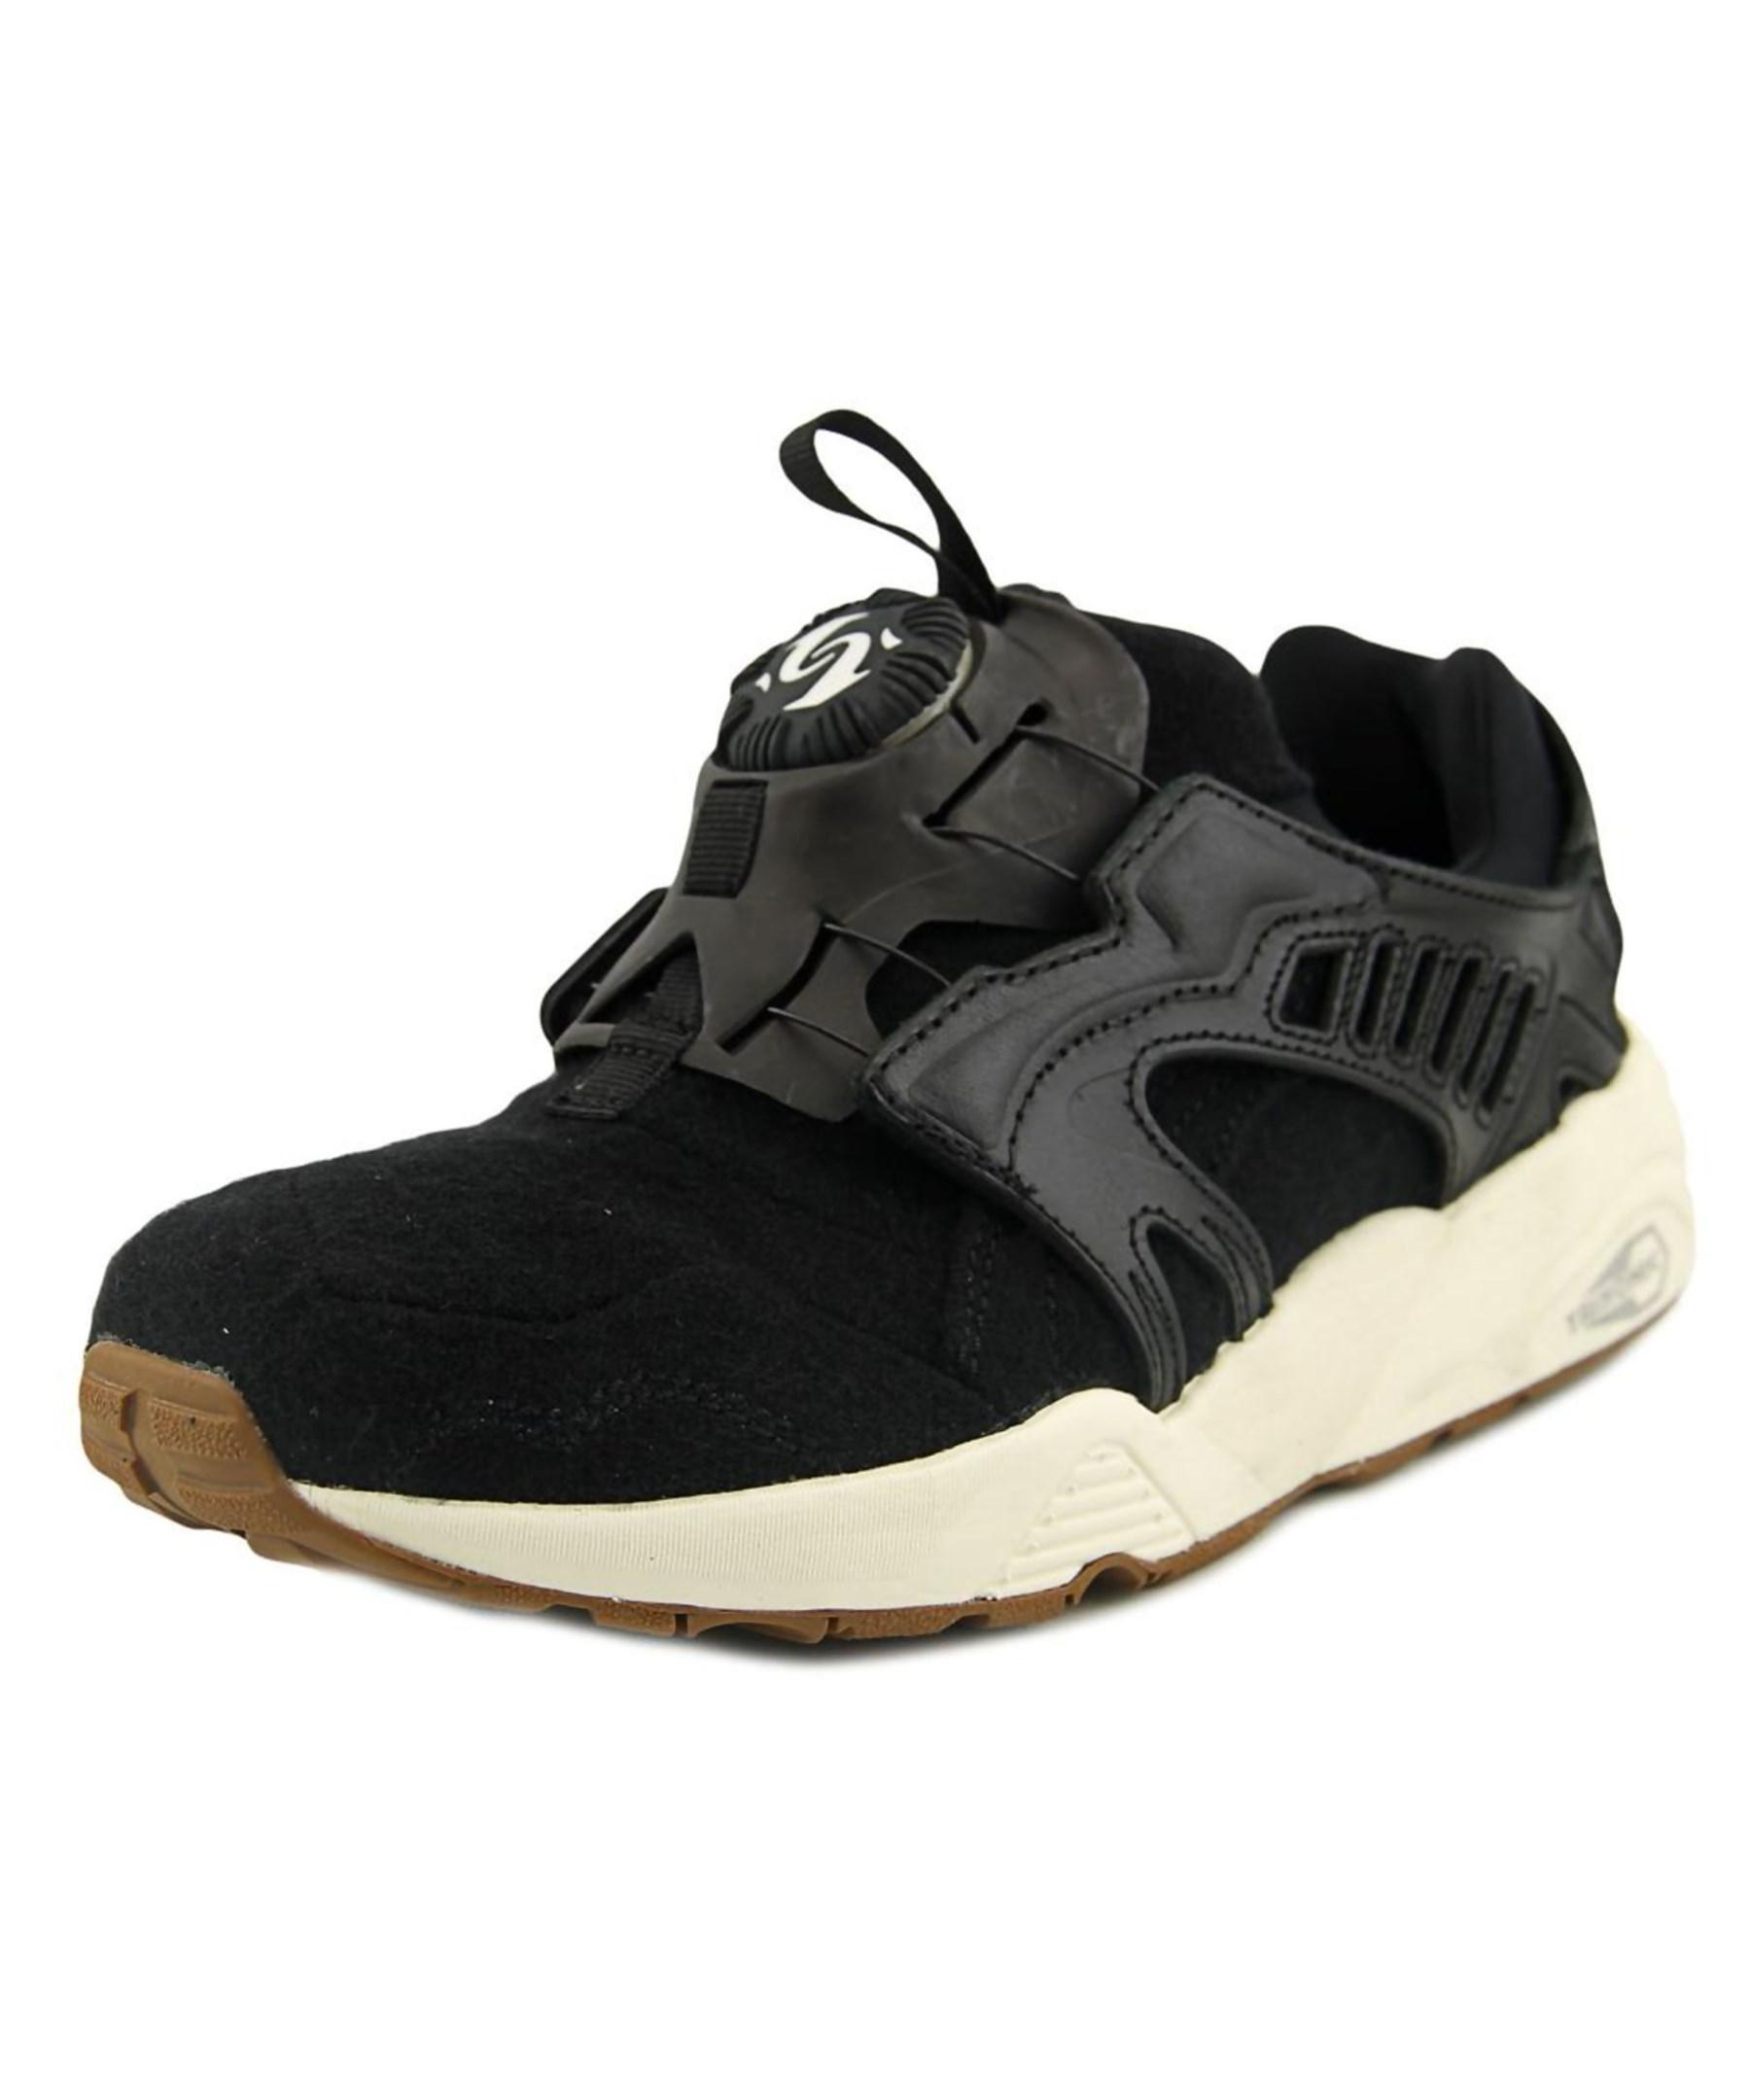 puma disc blaze round toe canvas sneakers in black for men. Black Bedroom Furniture Sets. Home Design Ideas